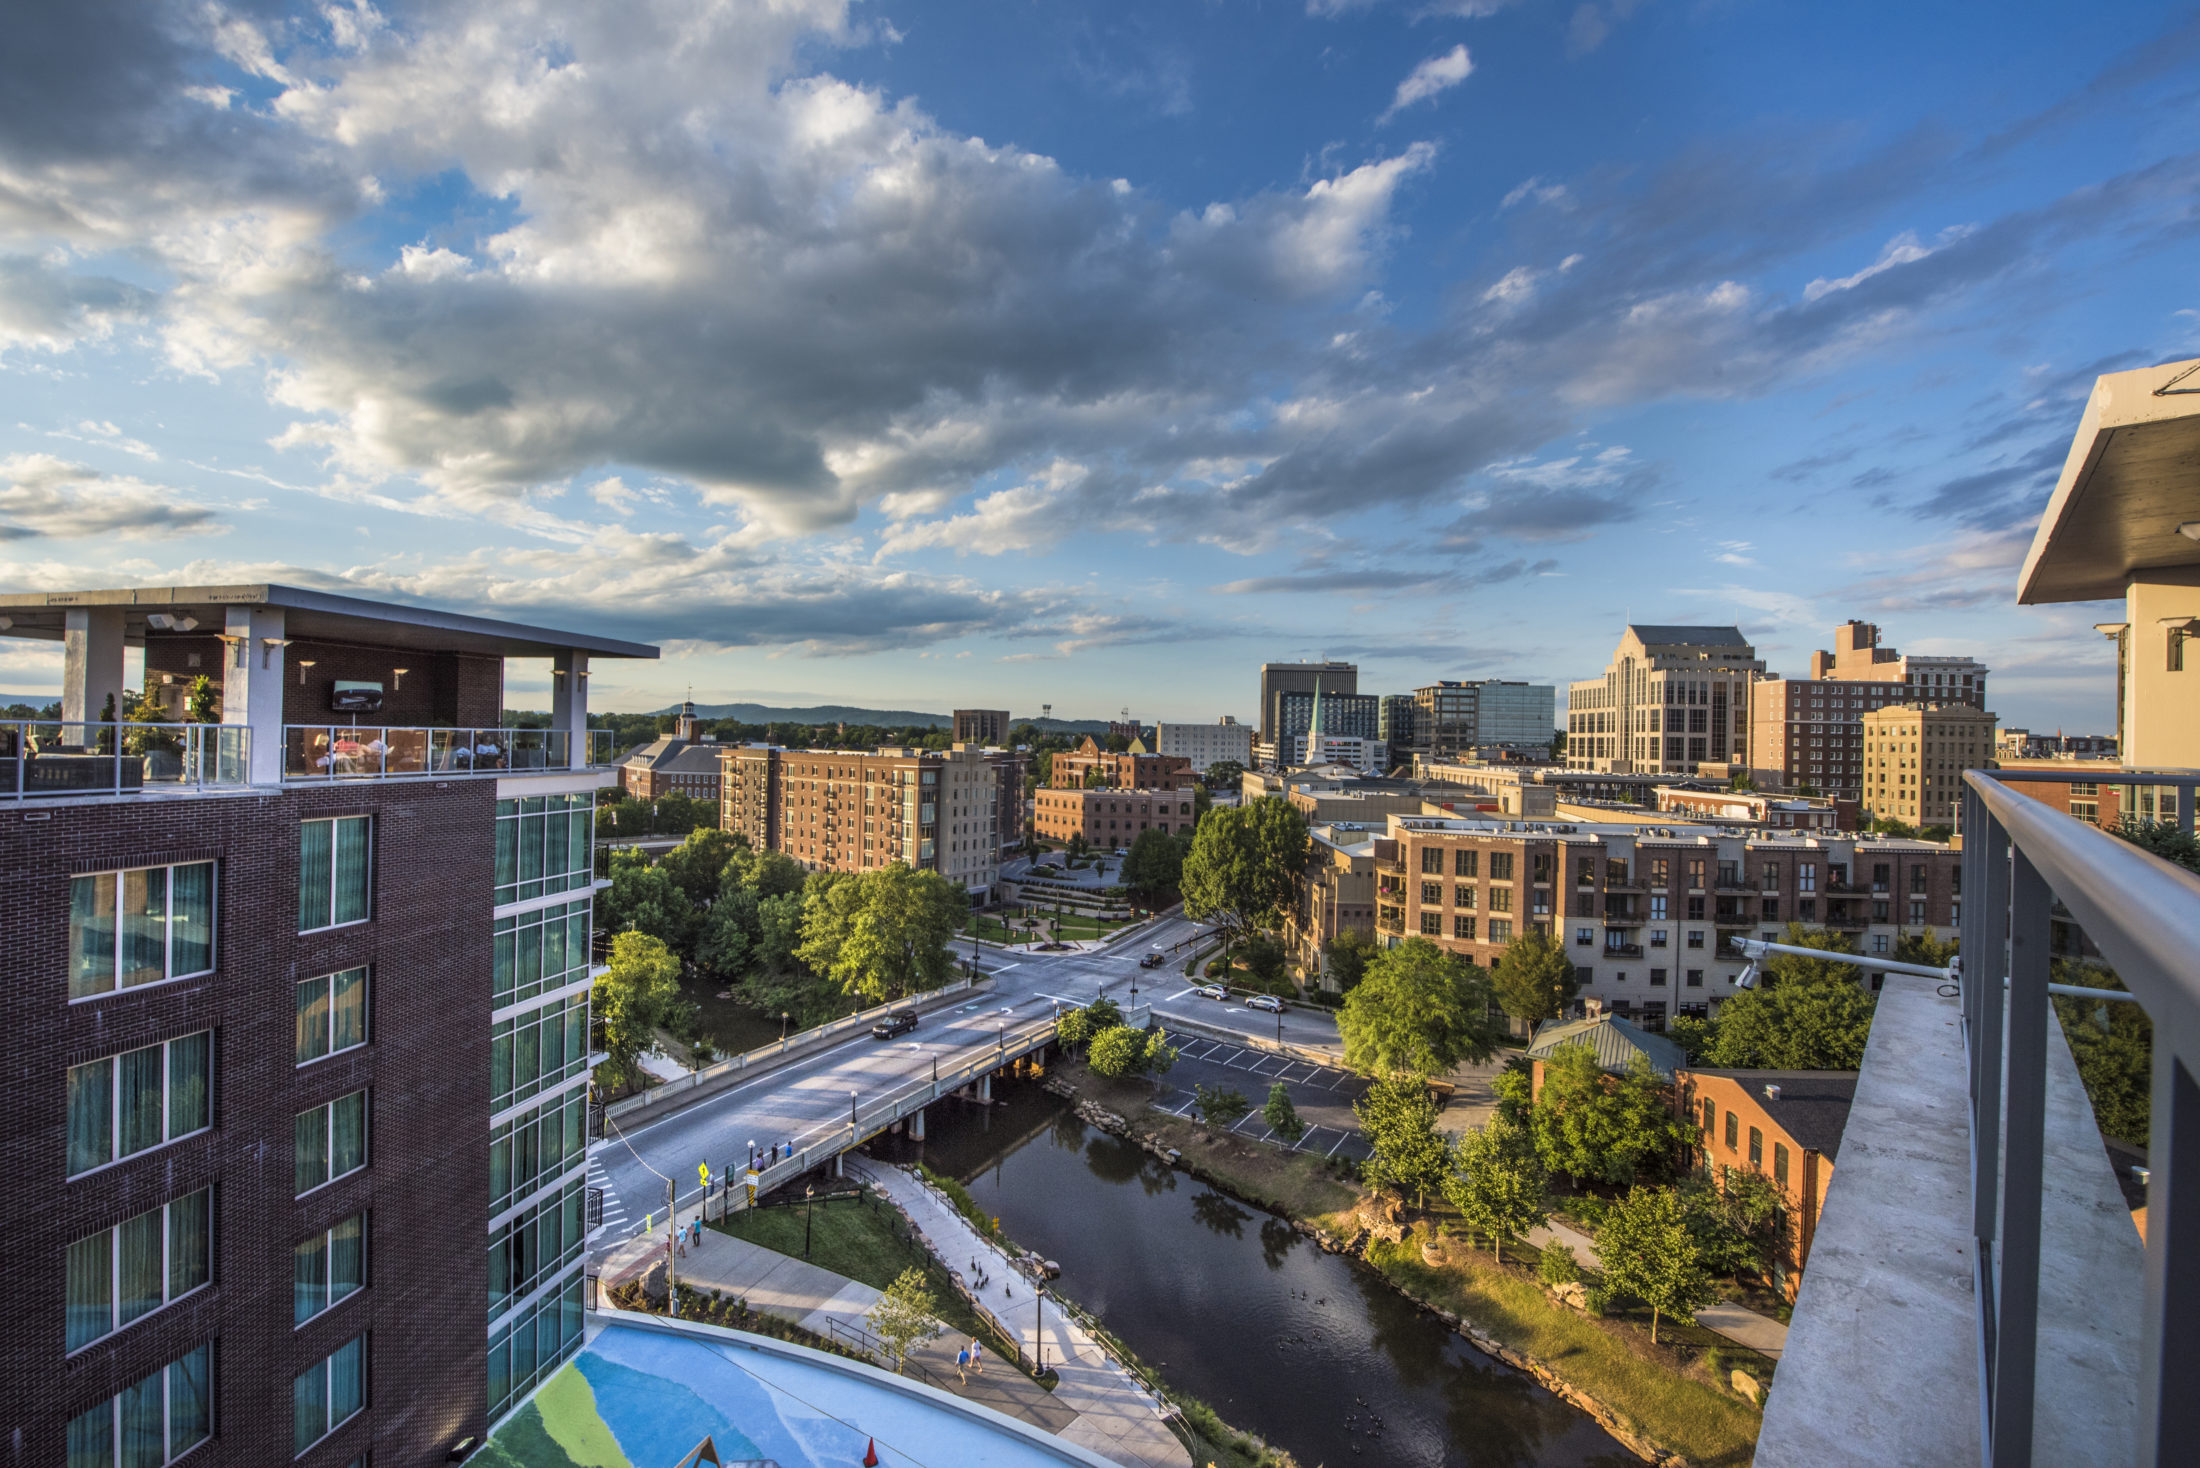 Drone view of Greenville, South Carolina